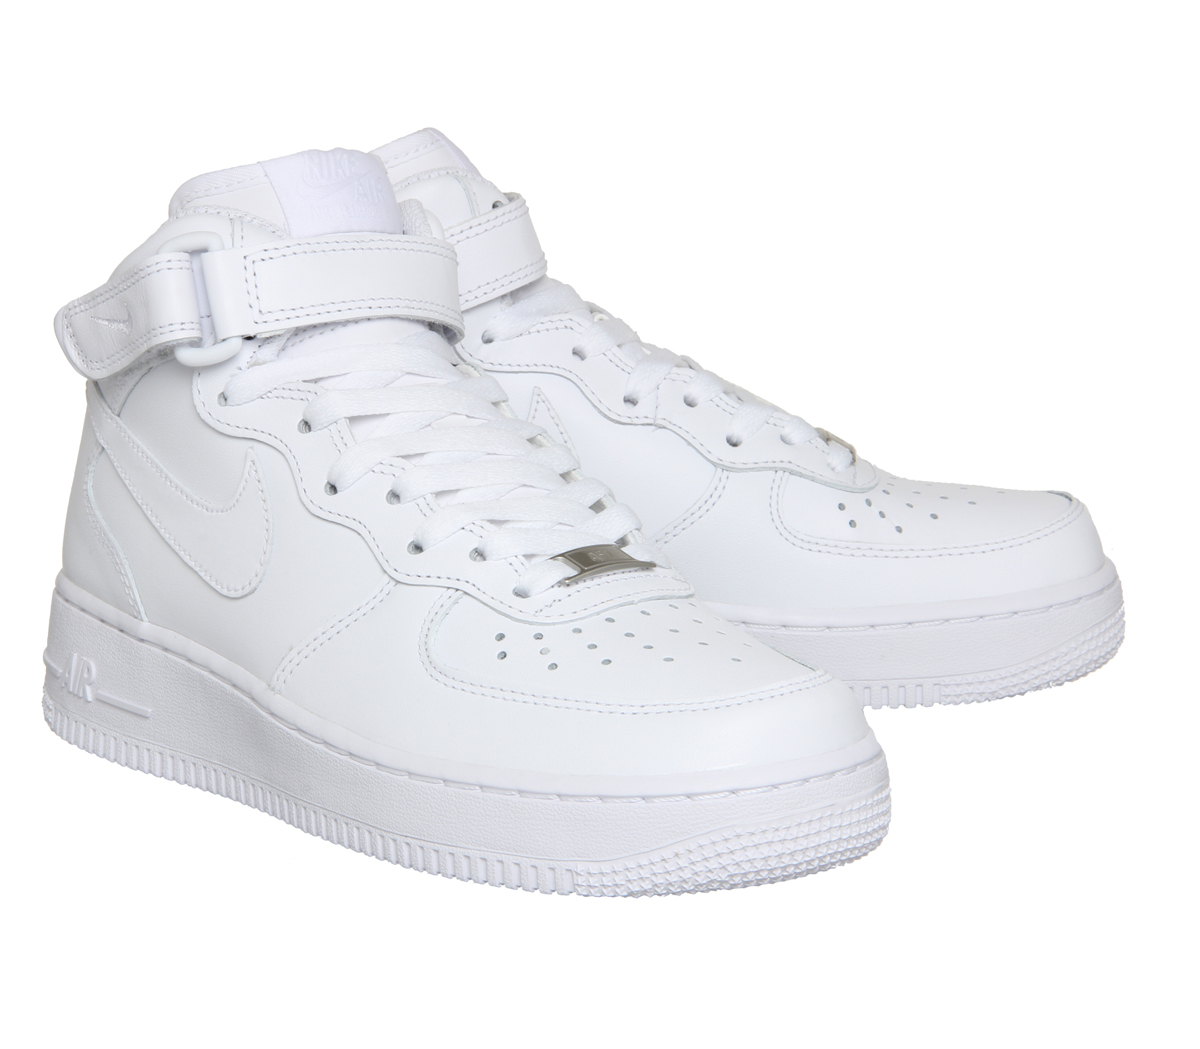 nike air force 1 mid w in white lyst. Black Bedroom Furniture Sets. Home Design Ideas